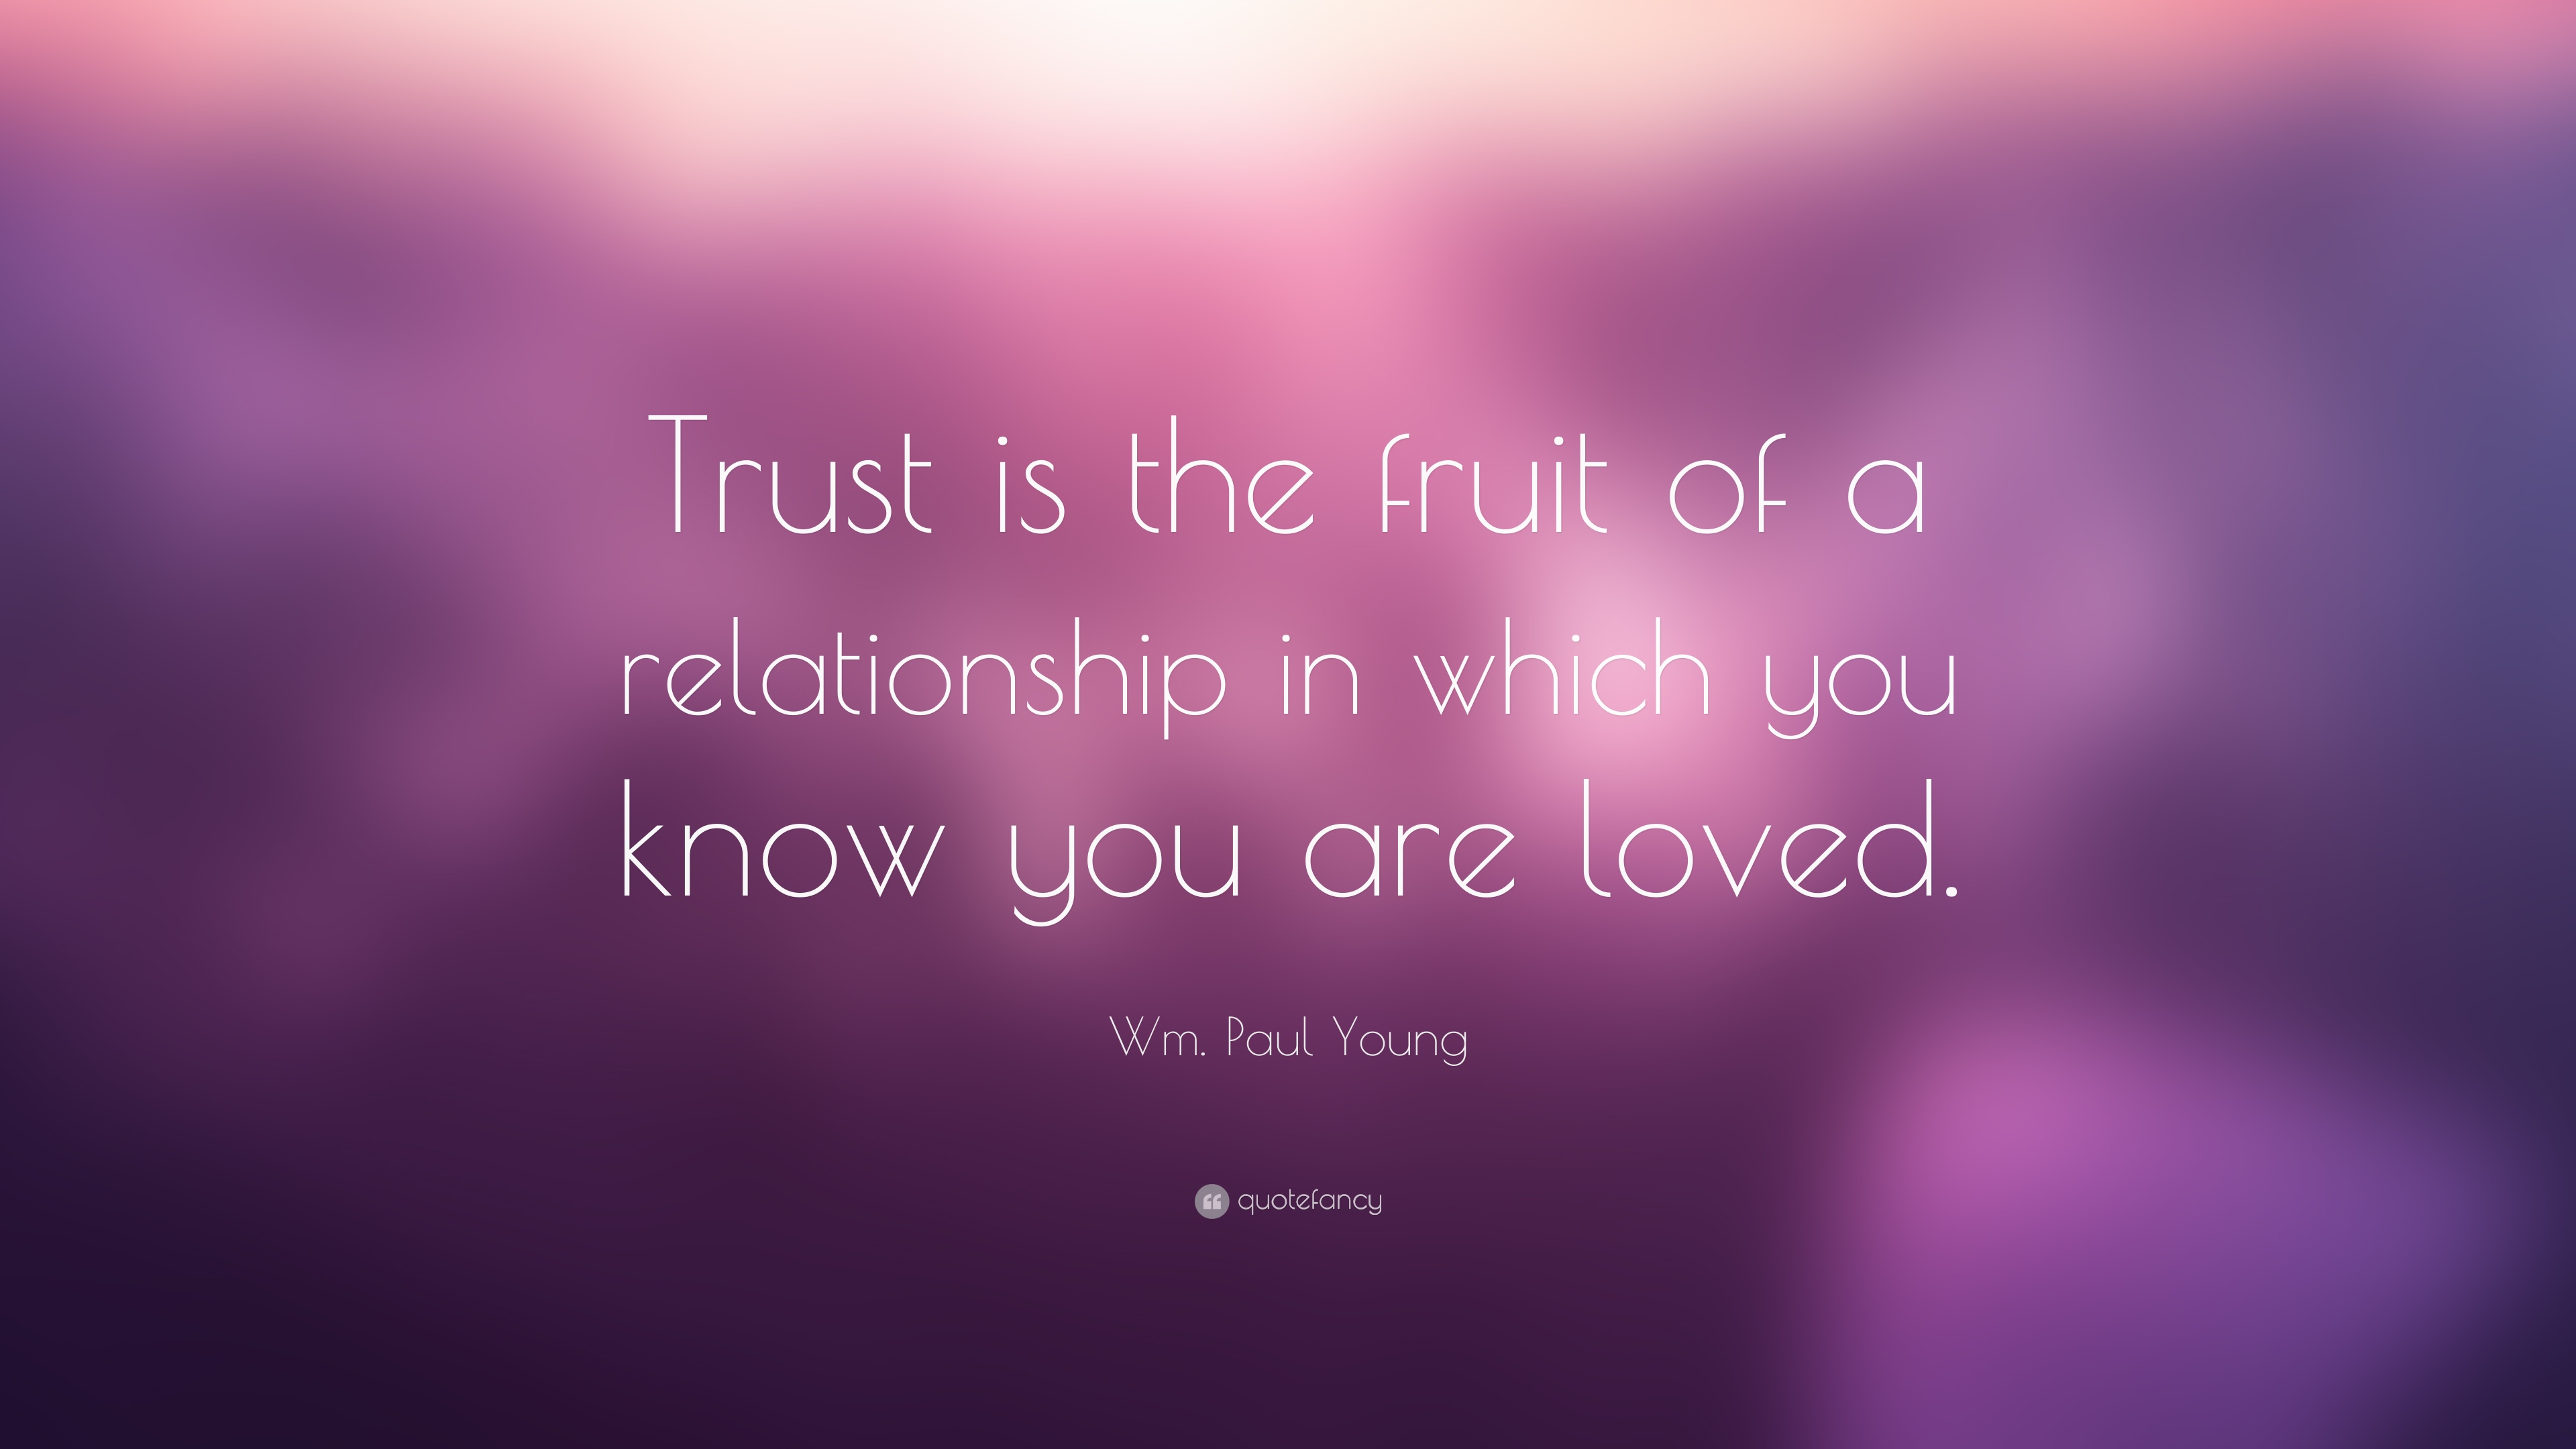 wm paul young quote trust is the fruit of a